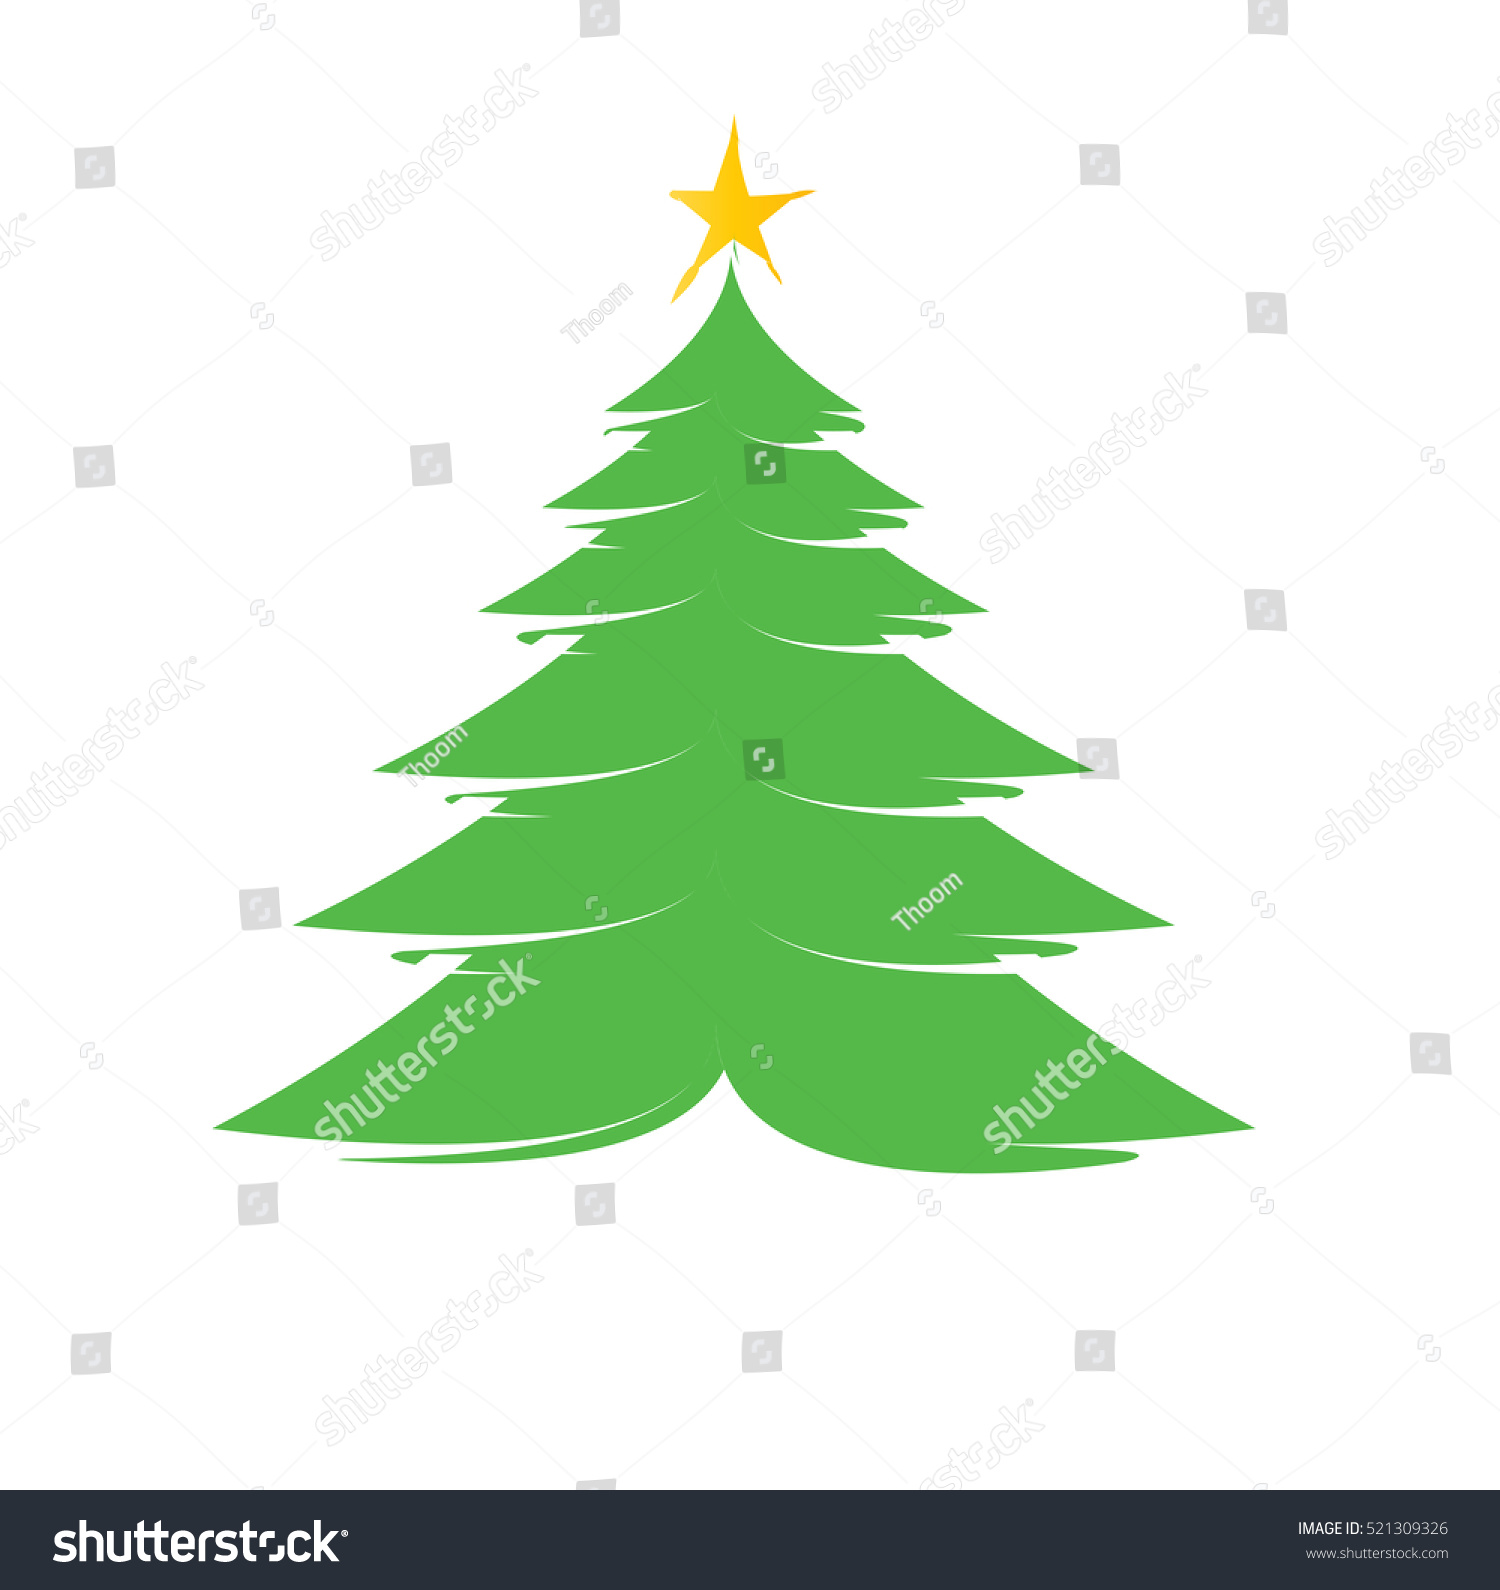 Christmas Tree Color Illustration Star Simple Stock Vector 521309326 ...